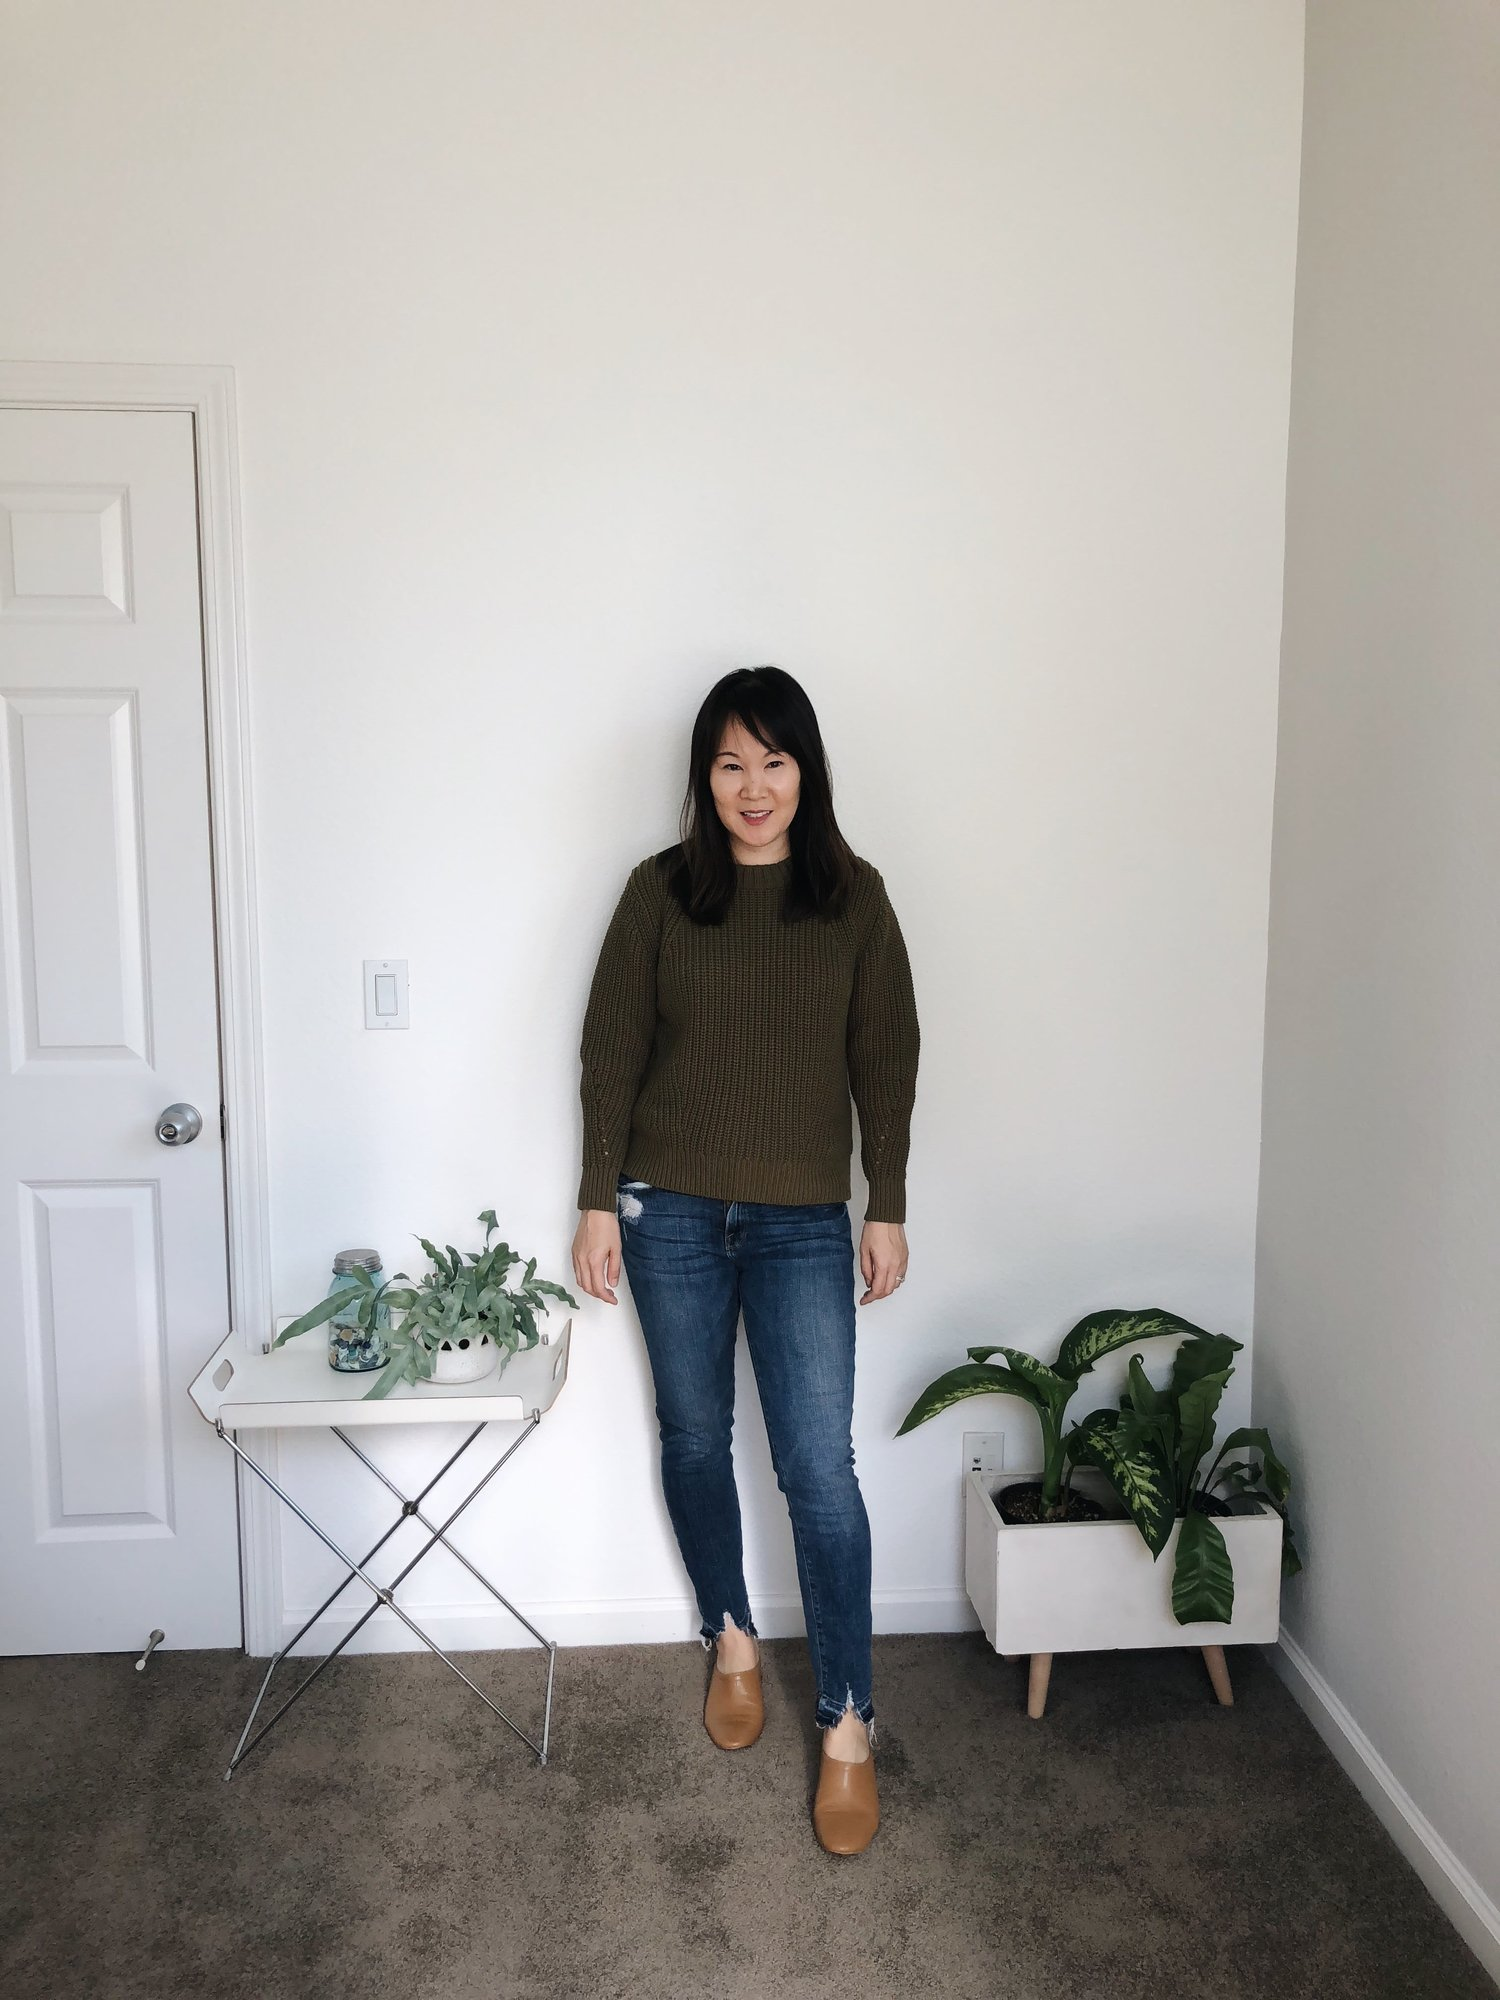 ad4b9f308d1da Everlane Review  The Texture Cotton Crew — Temporary-House Wifey